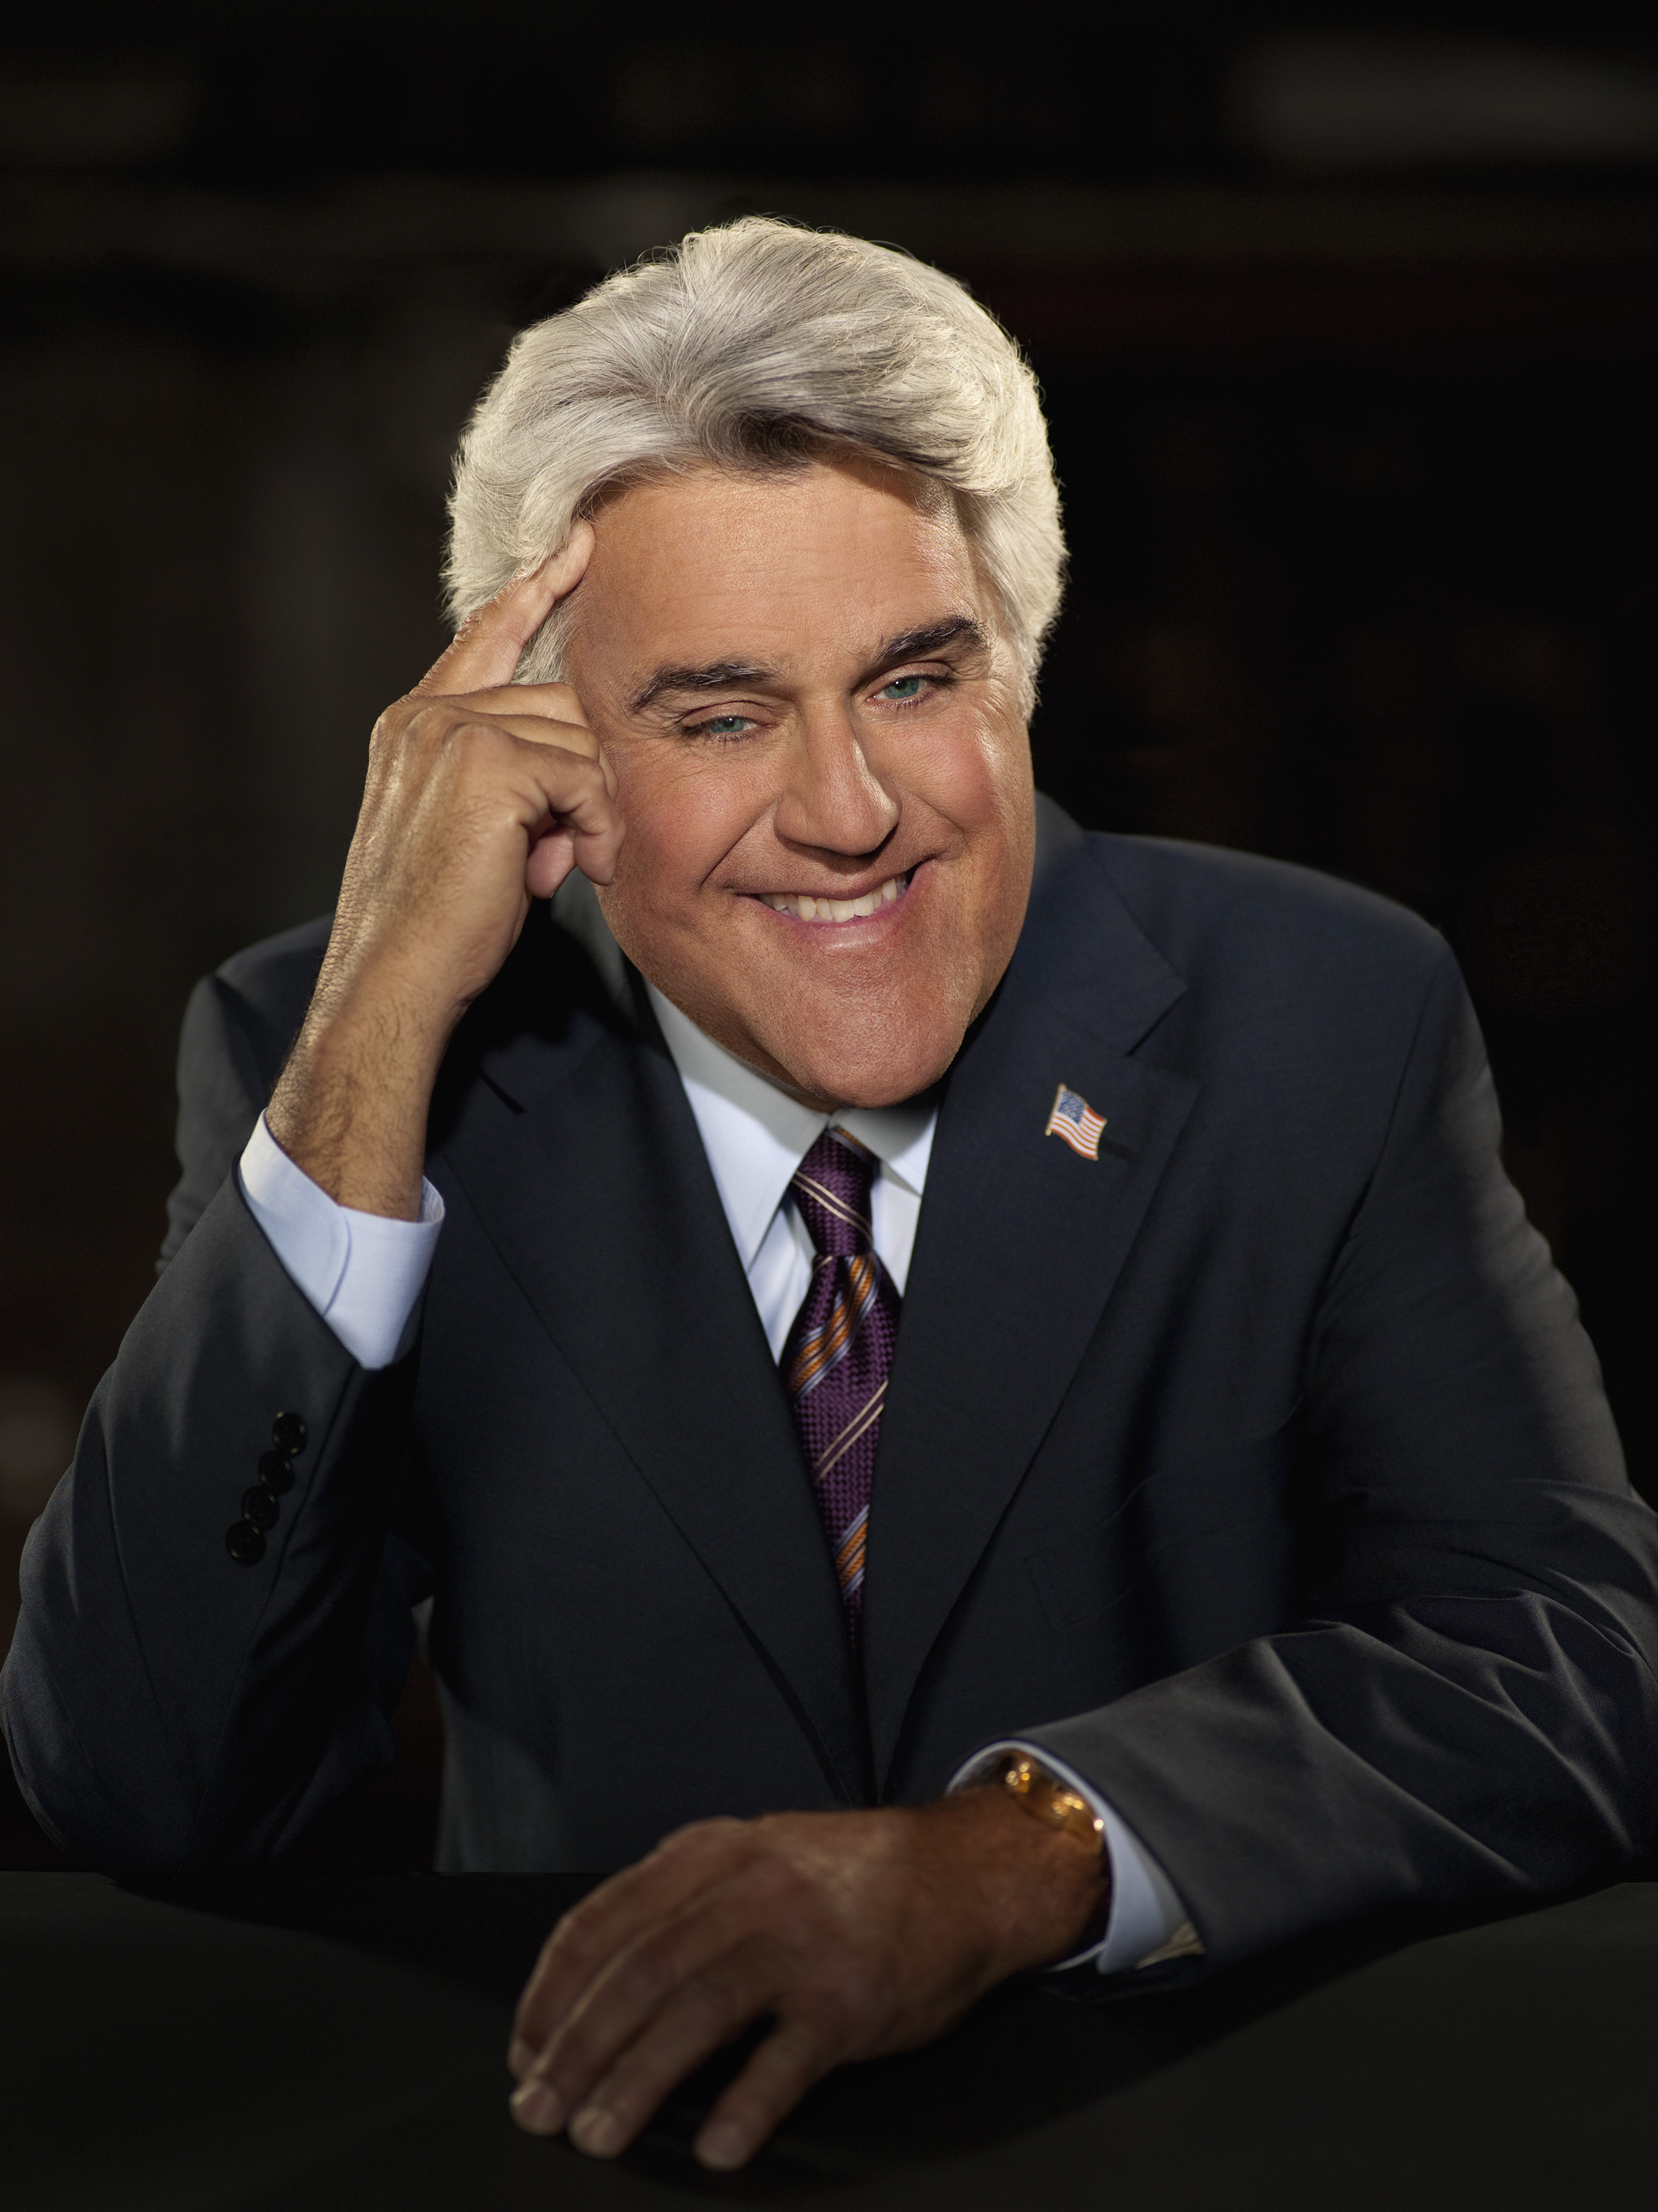 jay leno height